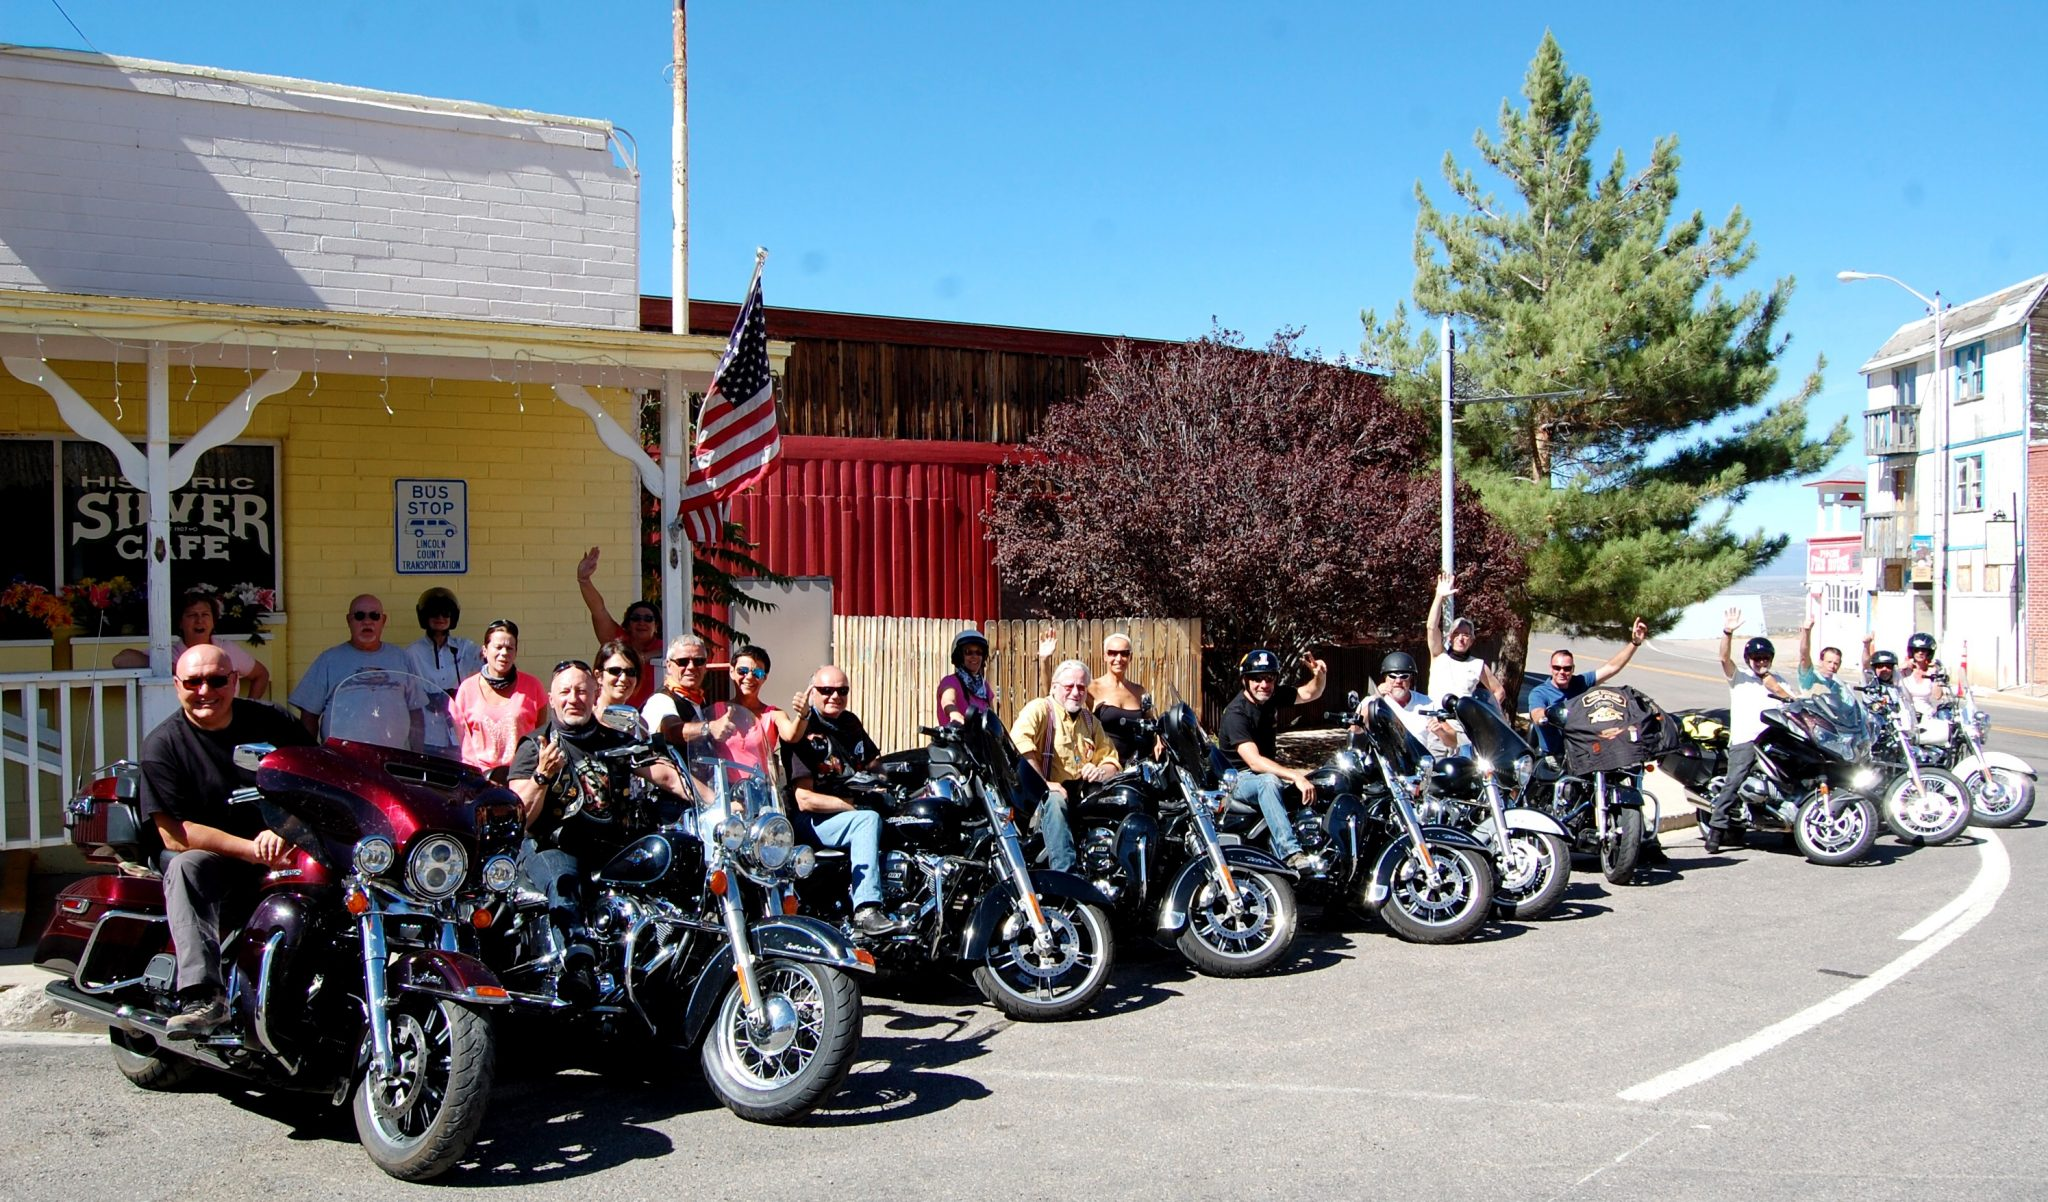 Belgian motorcycle tourists visit Pioche on 16-day tour